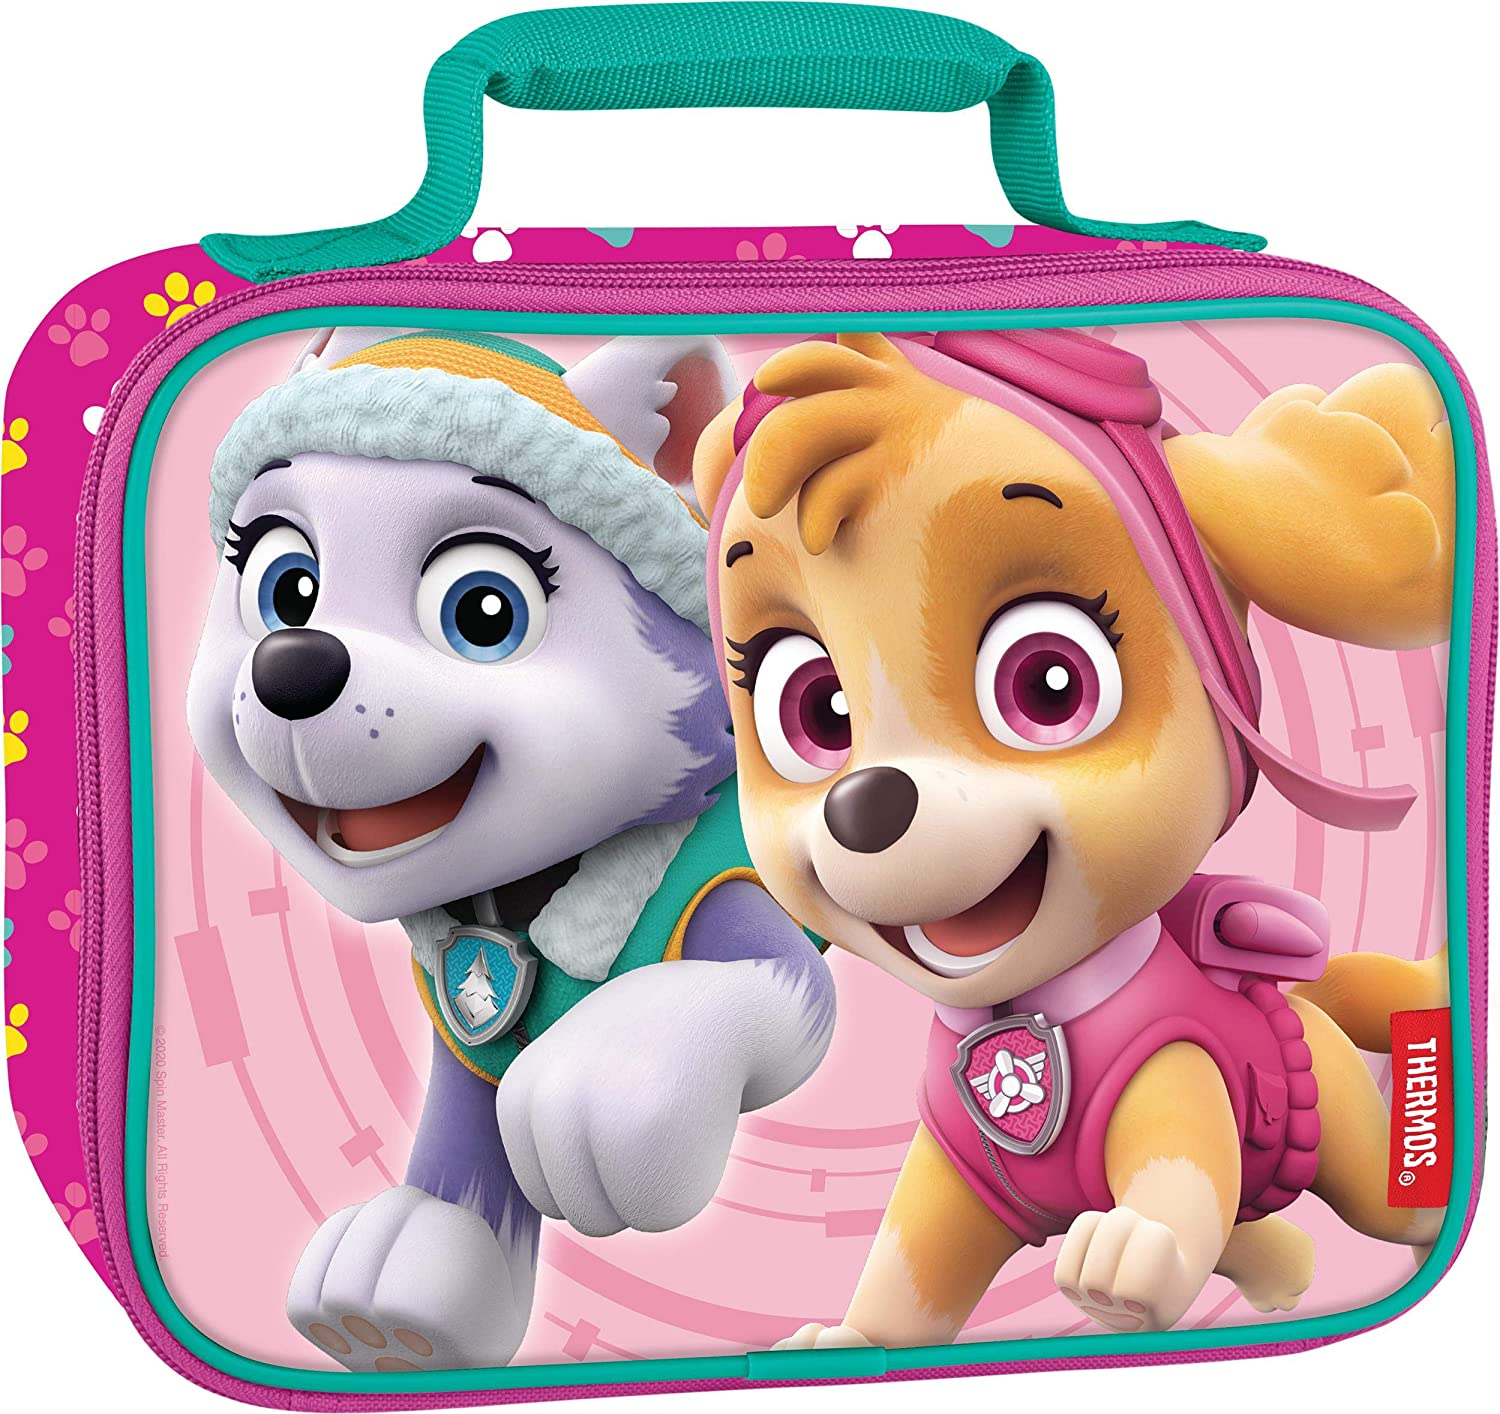 Thermos, Paw Patrol Girl Soft Lunch Kit, 9.5 x 3.75 x 7.5inch